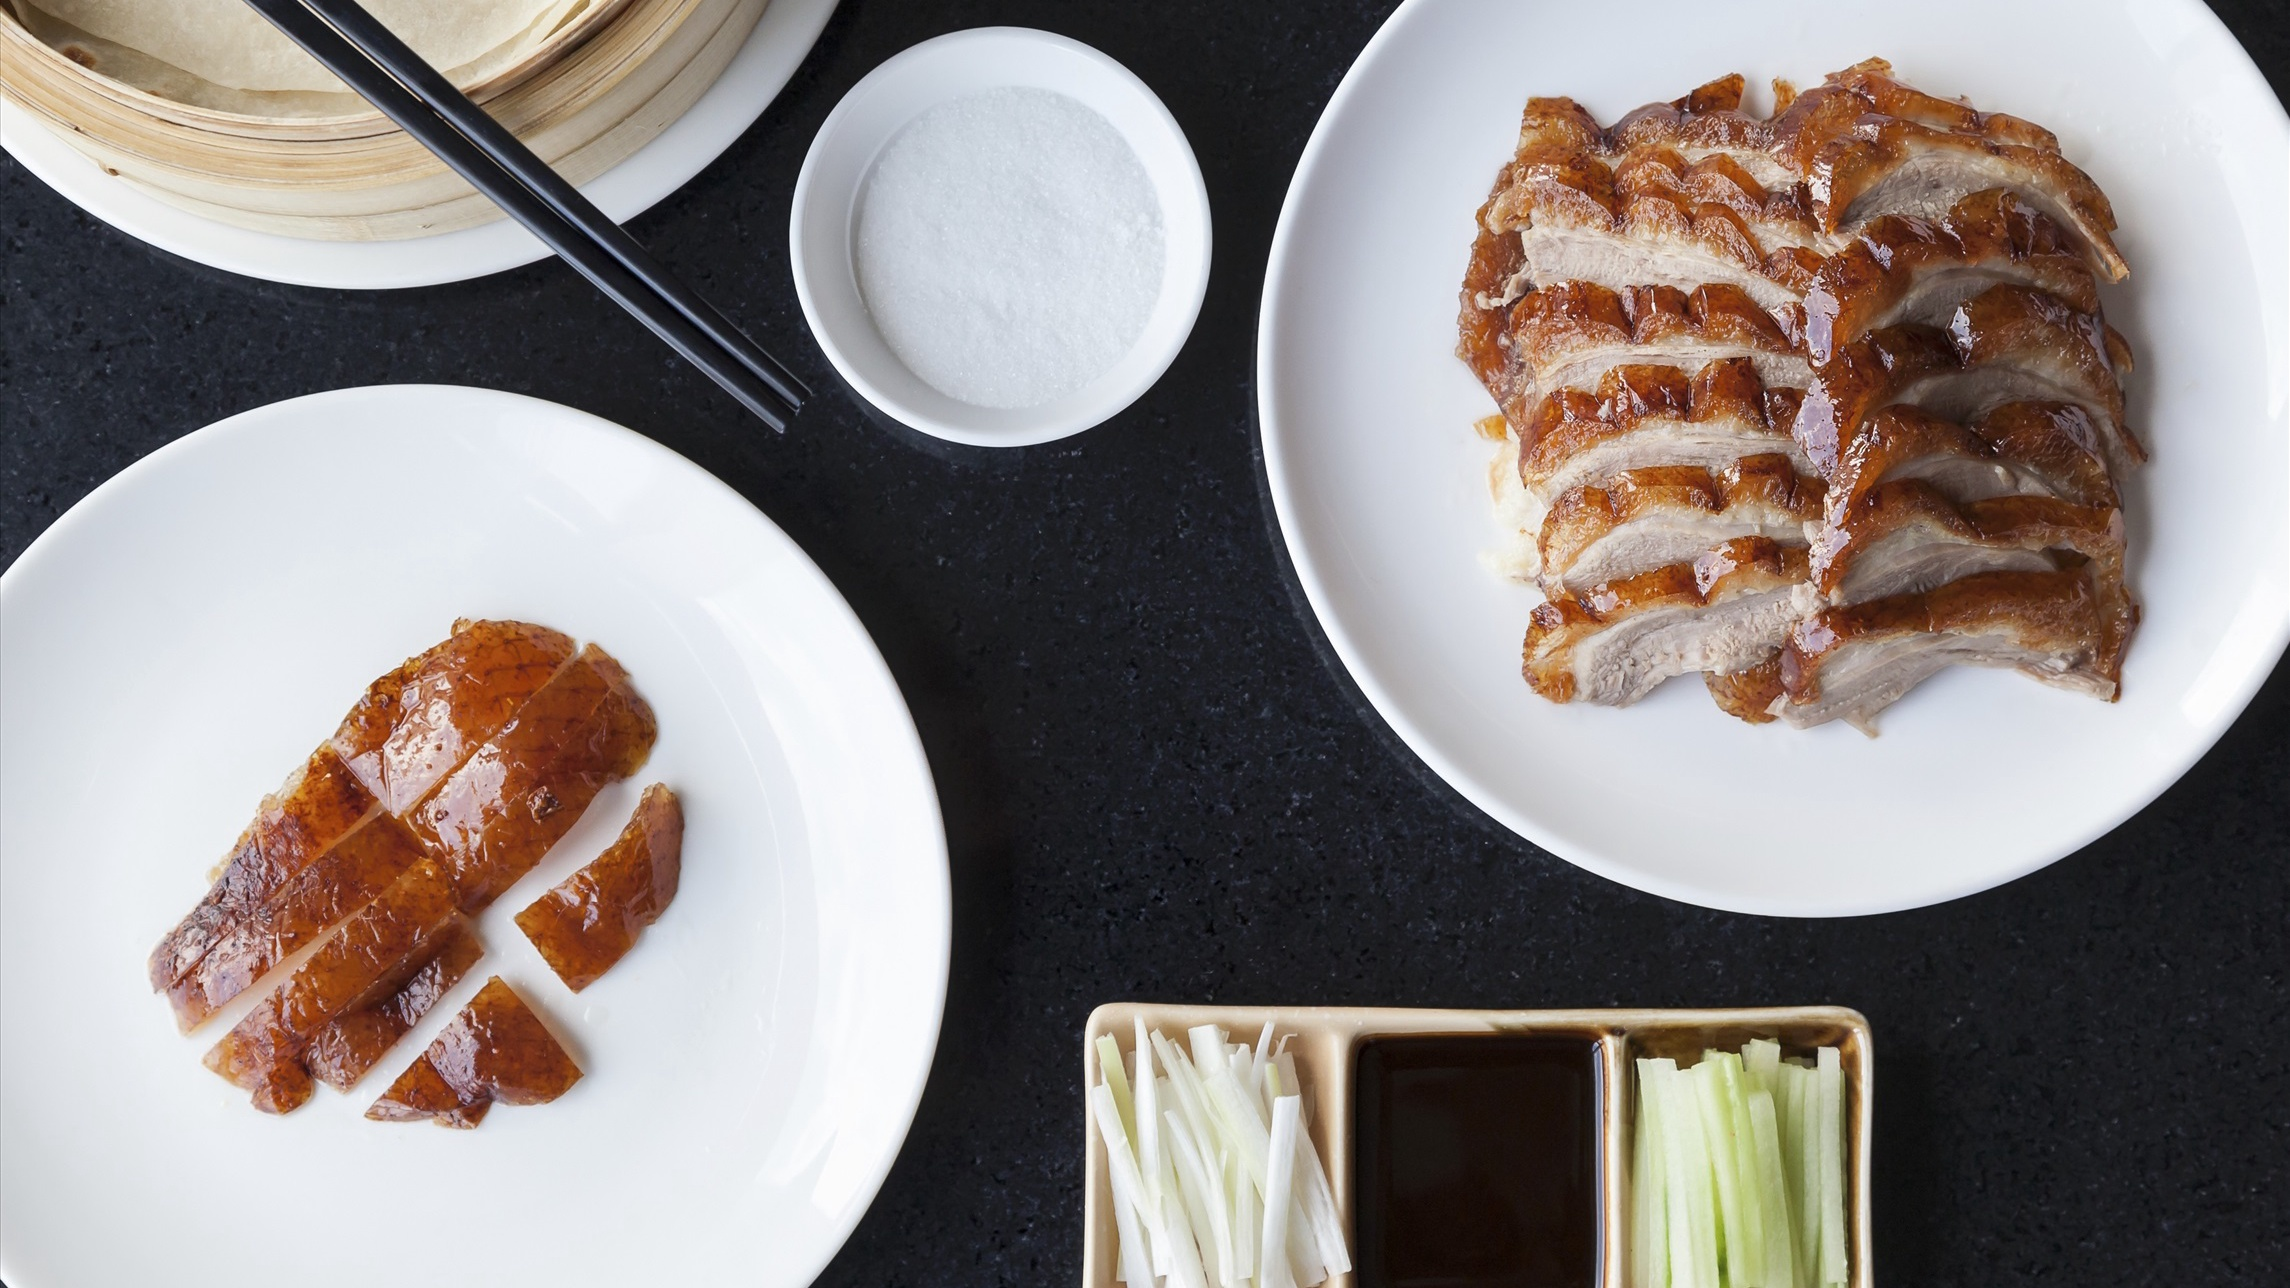 Fledgling eateries offer up perfect Peking duck